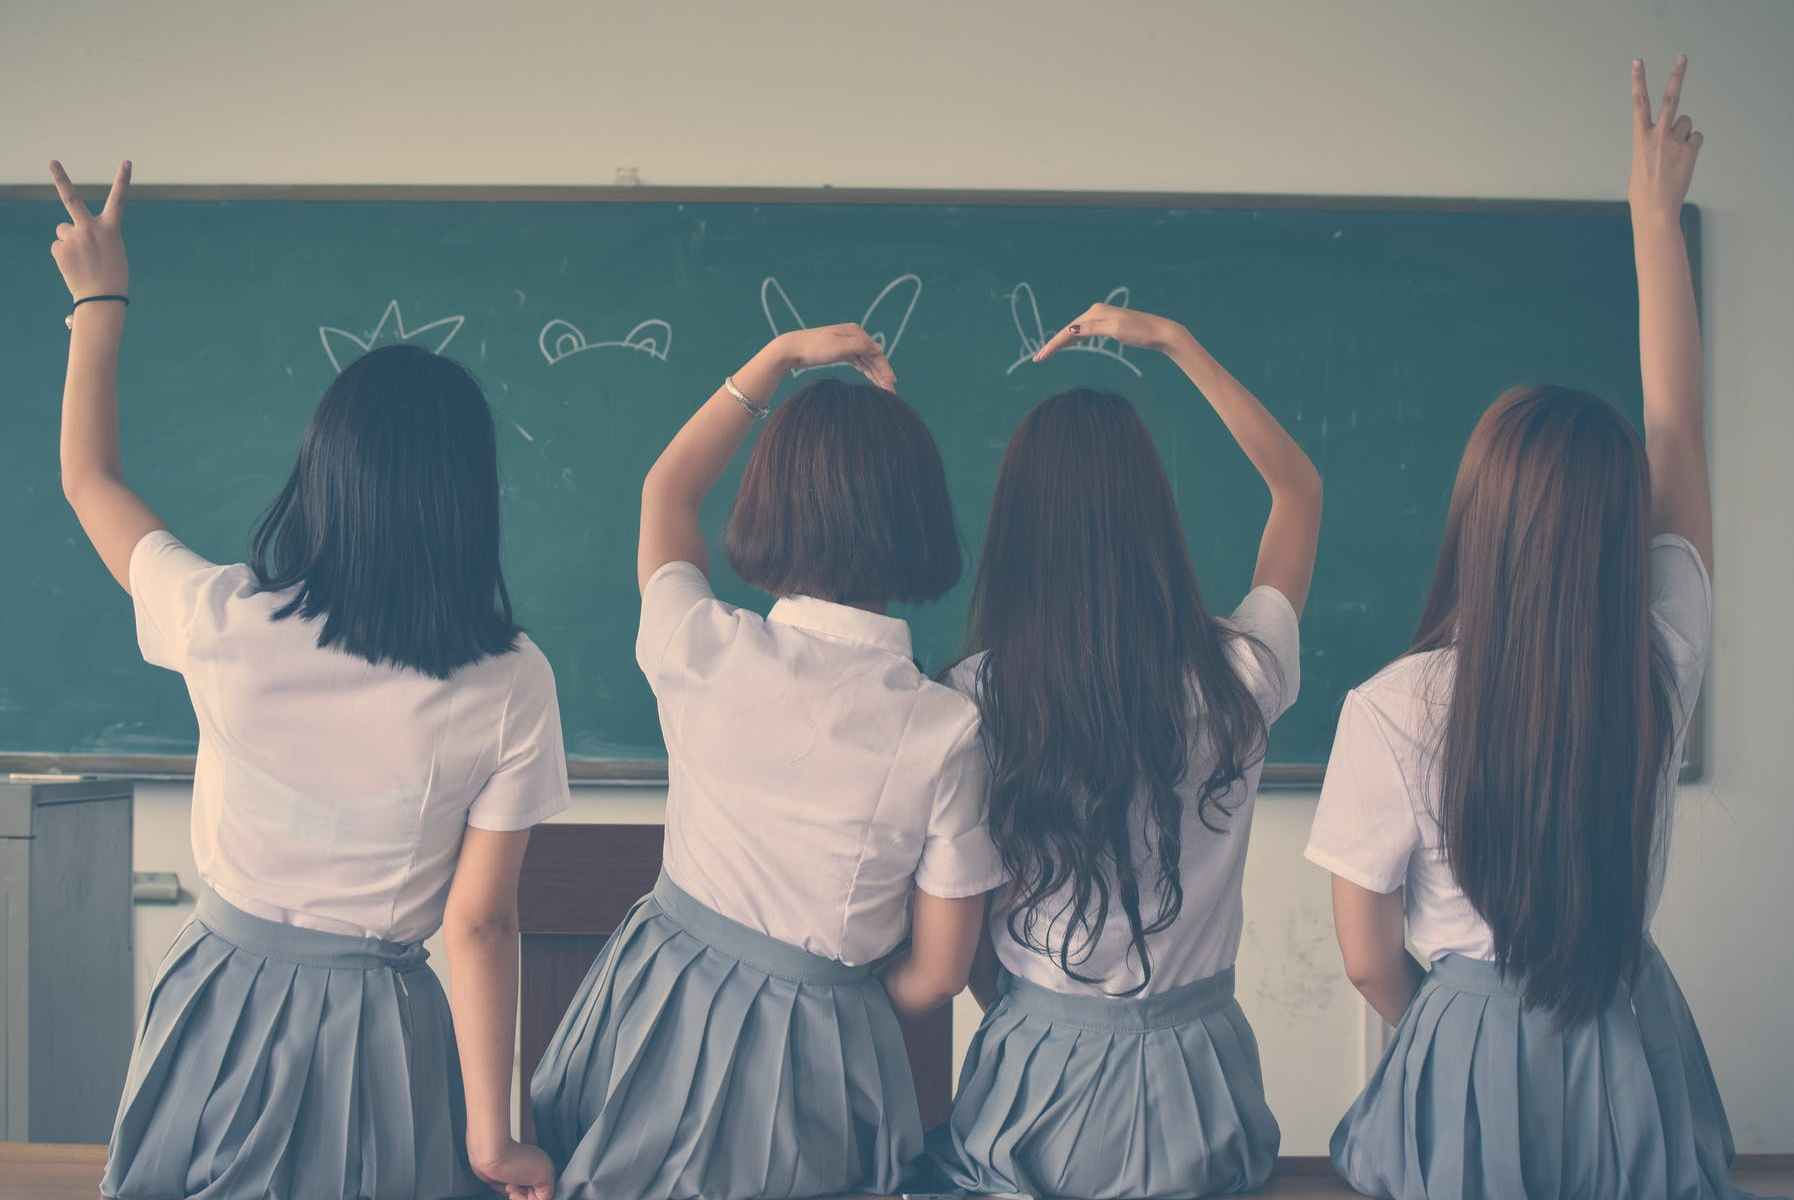 photo of four girls wearing school uniform doing hand signs